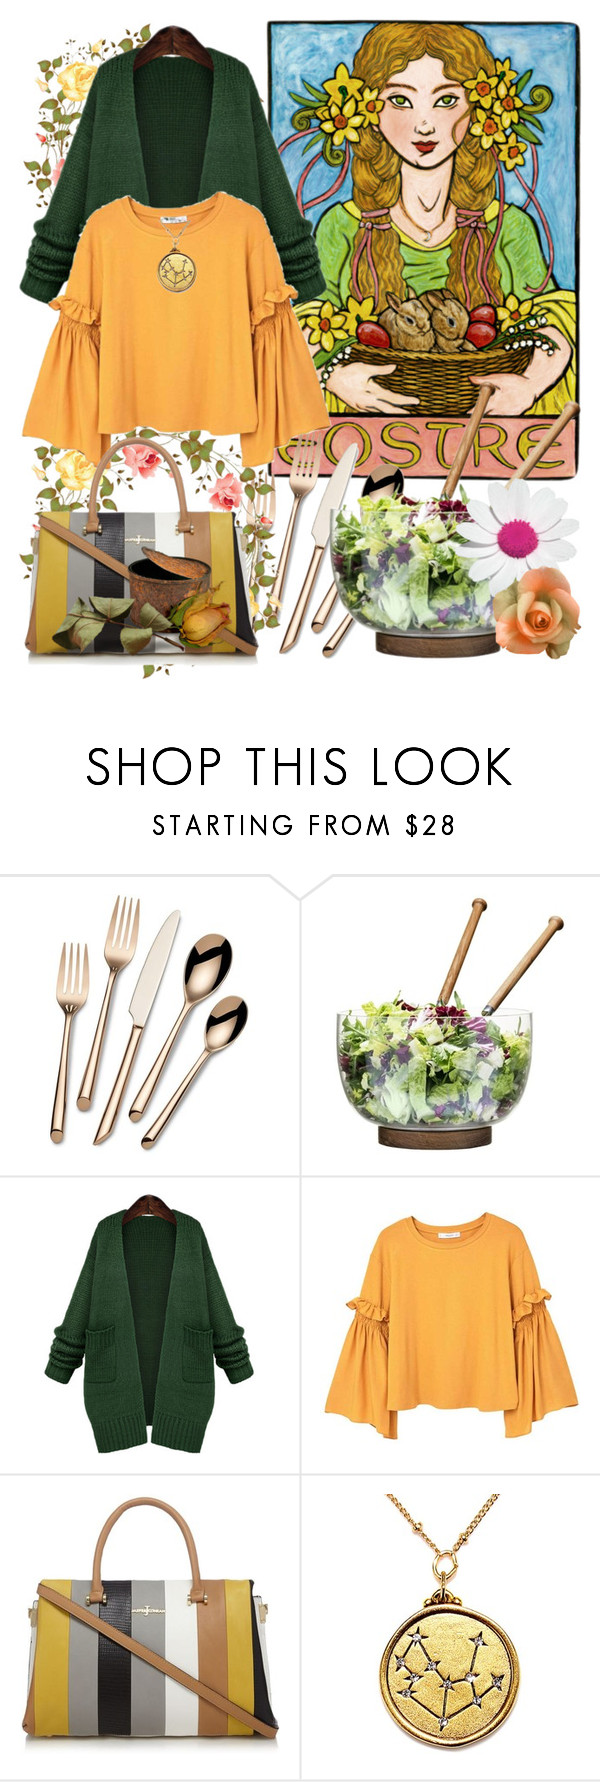 """#Brunch With Friends"" by detroitgurlxx ❤ liked on Polyvore featuring Towle, Sagaform, WithChic and MANGO"